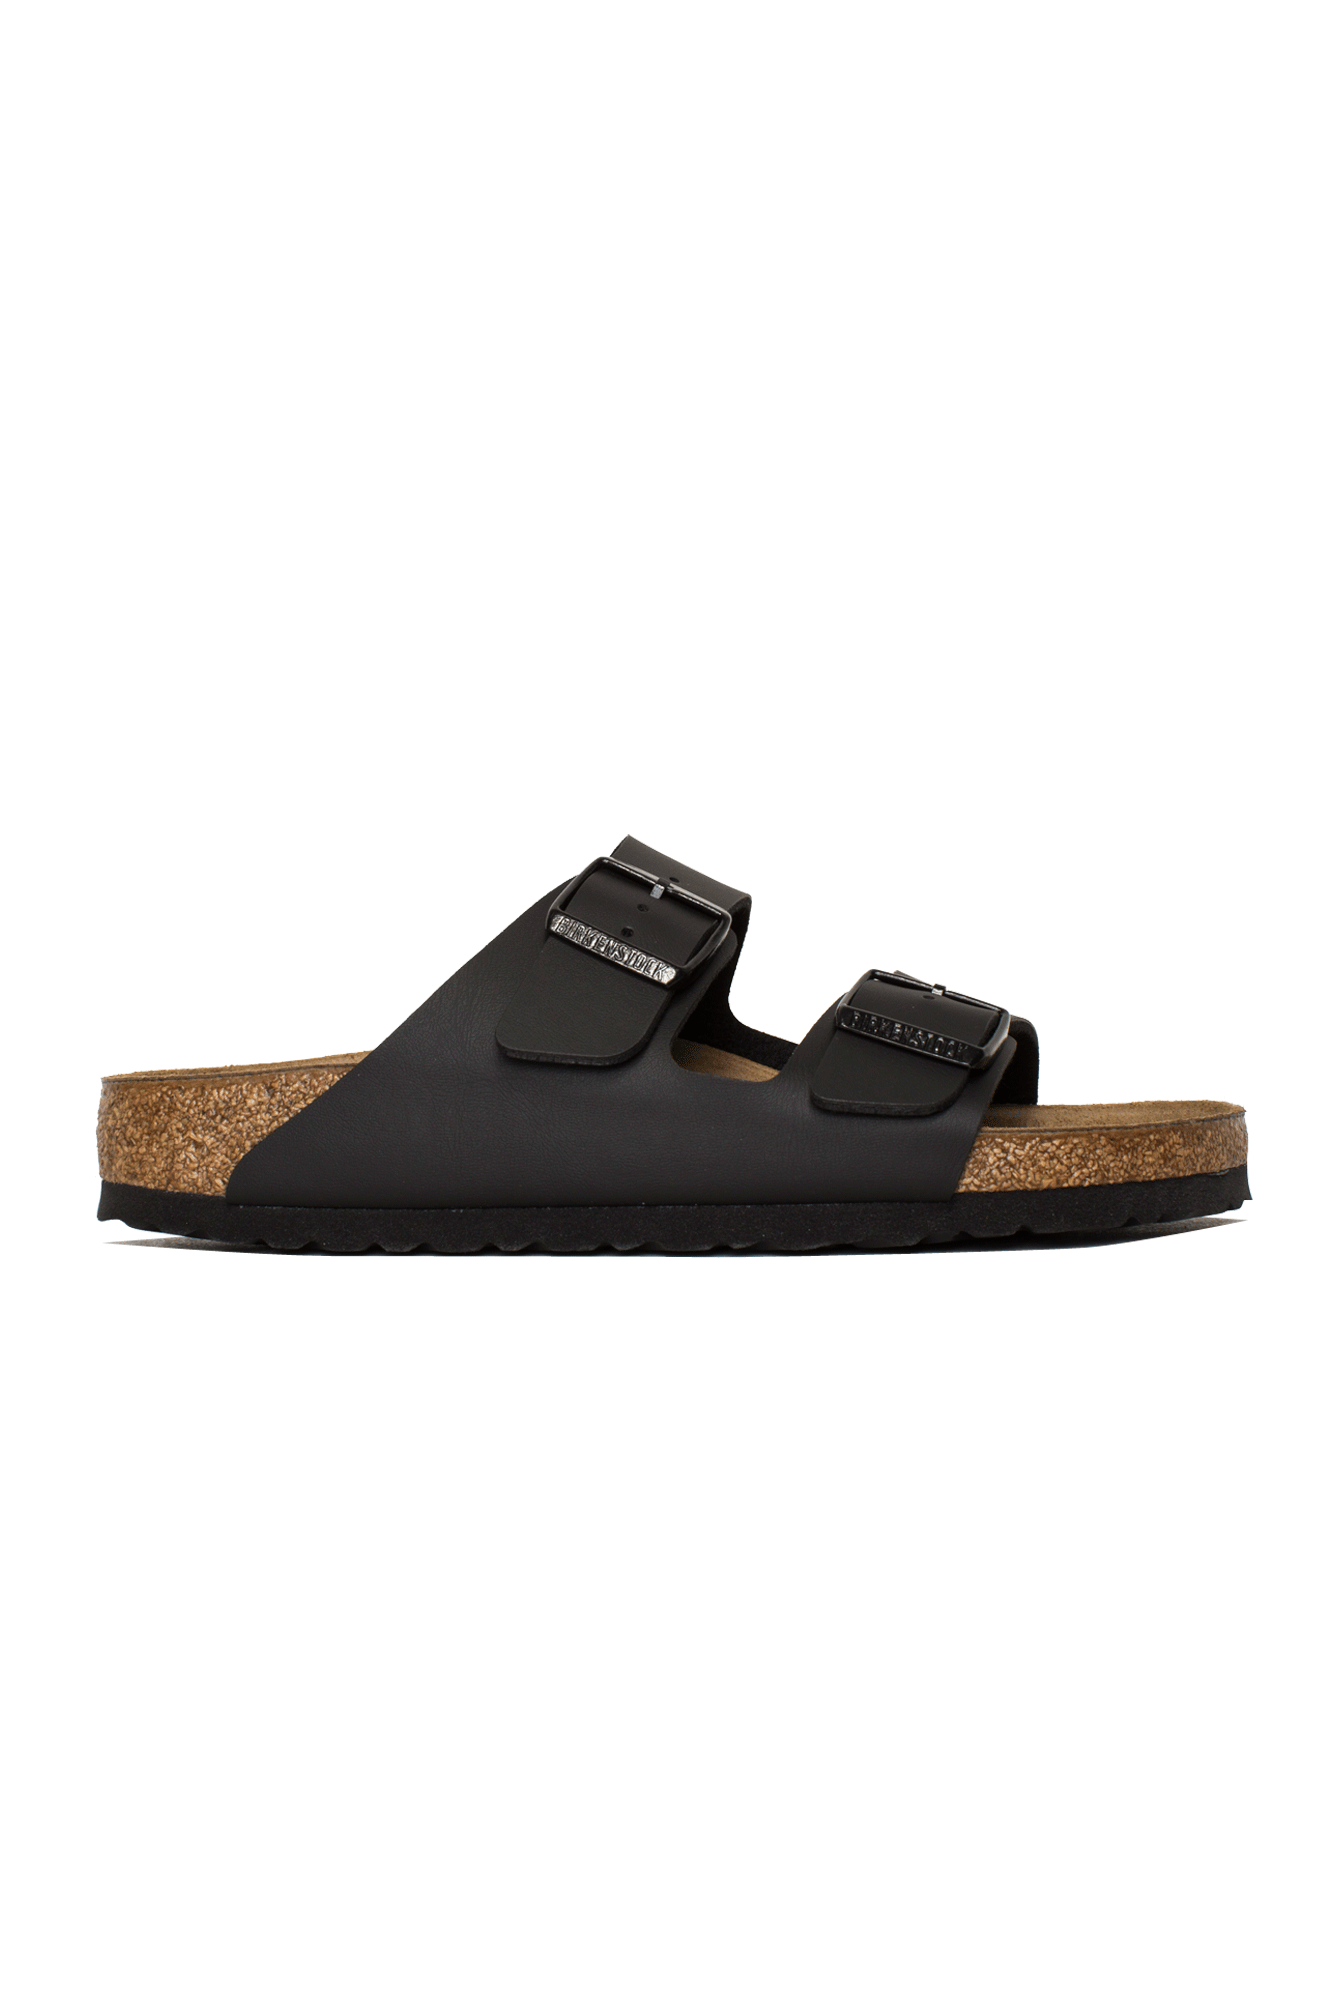 Birkenstock Sandali & Ciabatte Arizona Nero 051793#000#BLK#4 - One Block Down